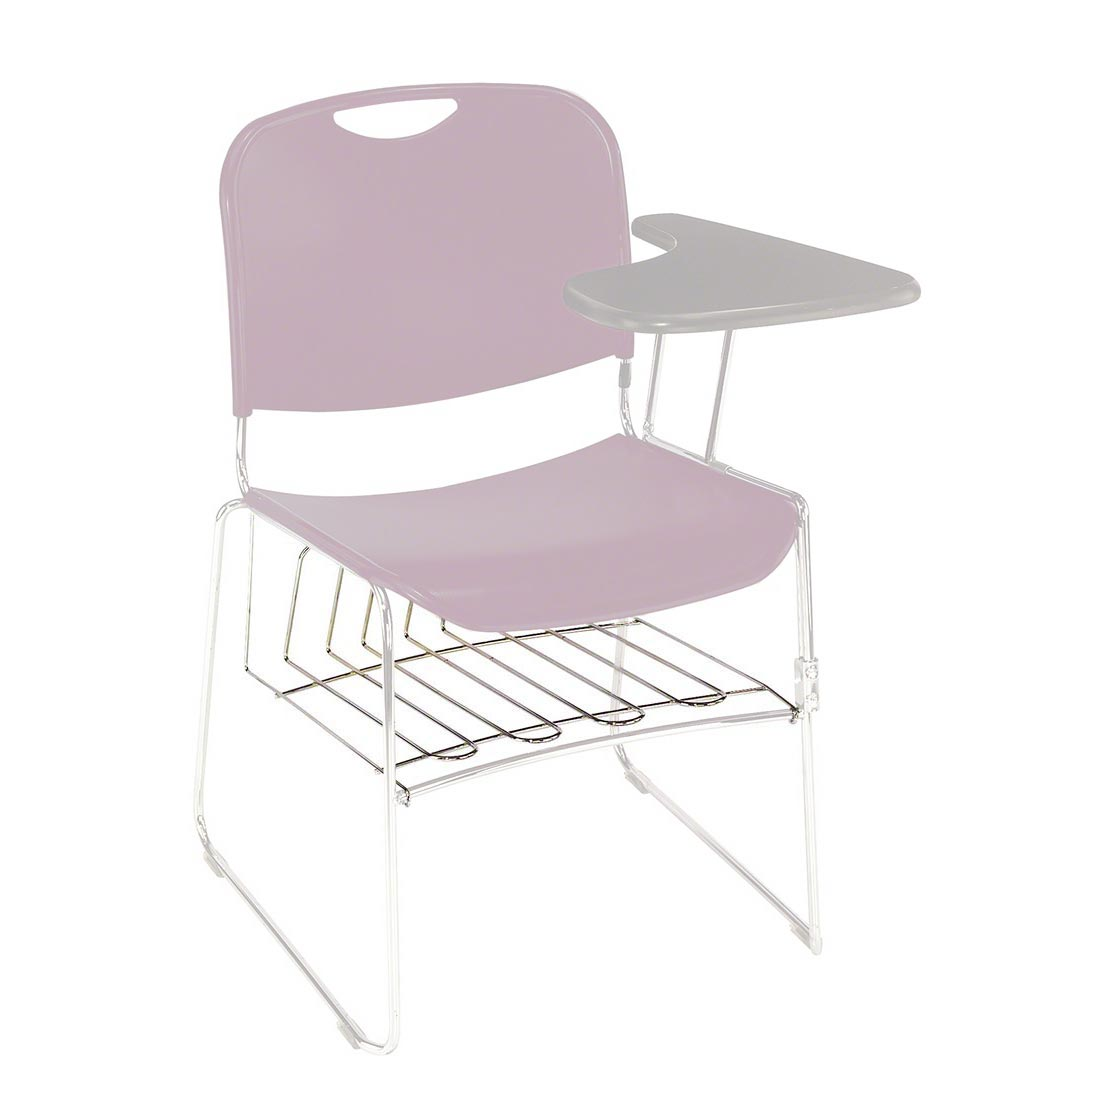 public seating chairs antique butler chair national 8500 series book basket for stack nps br85